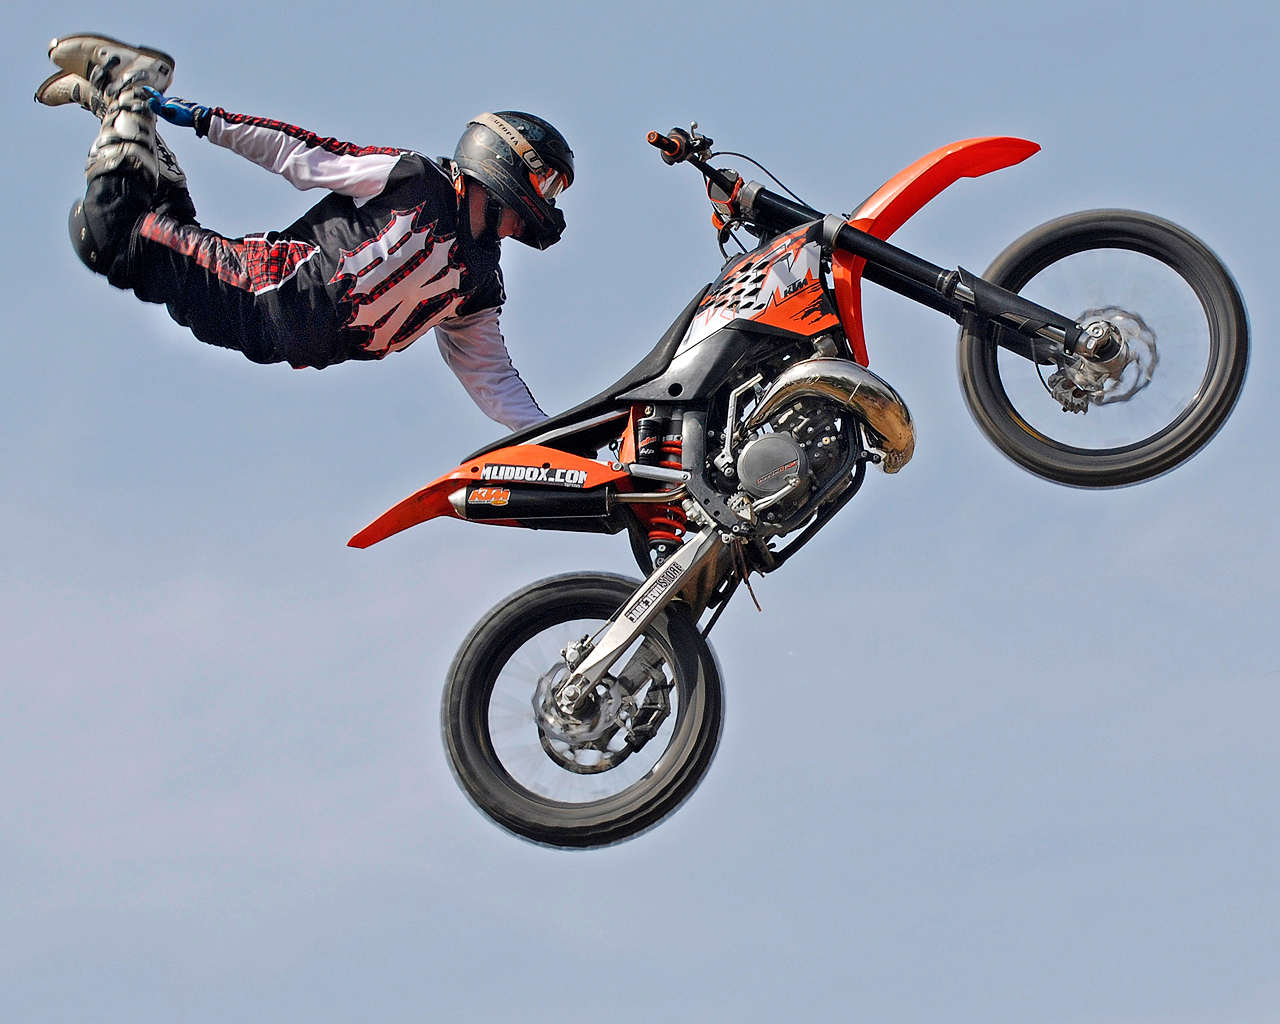 Bike Tricks Games X Games Drops Freestyle MX